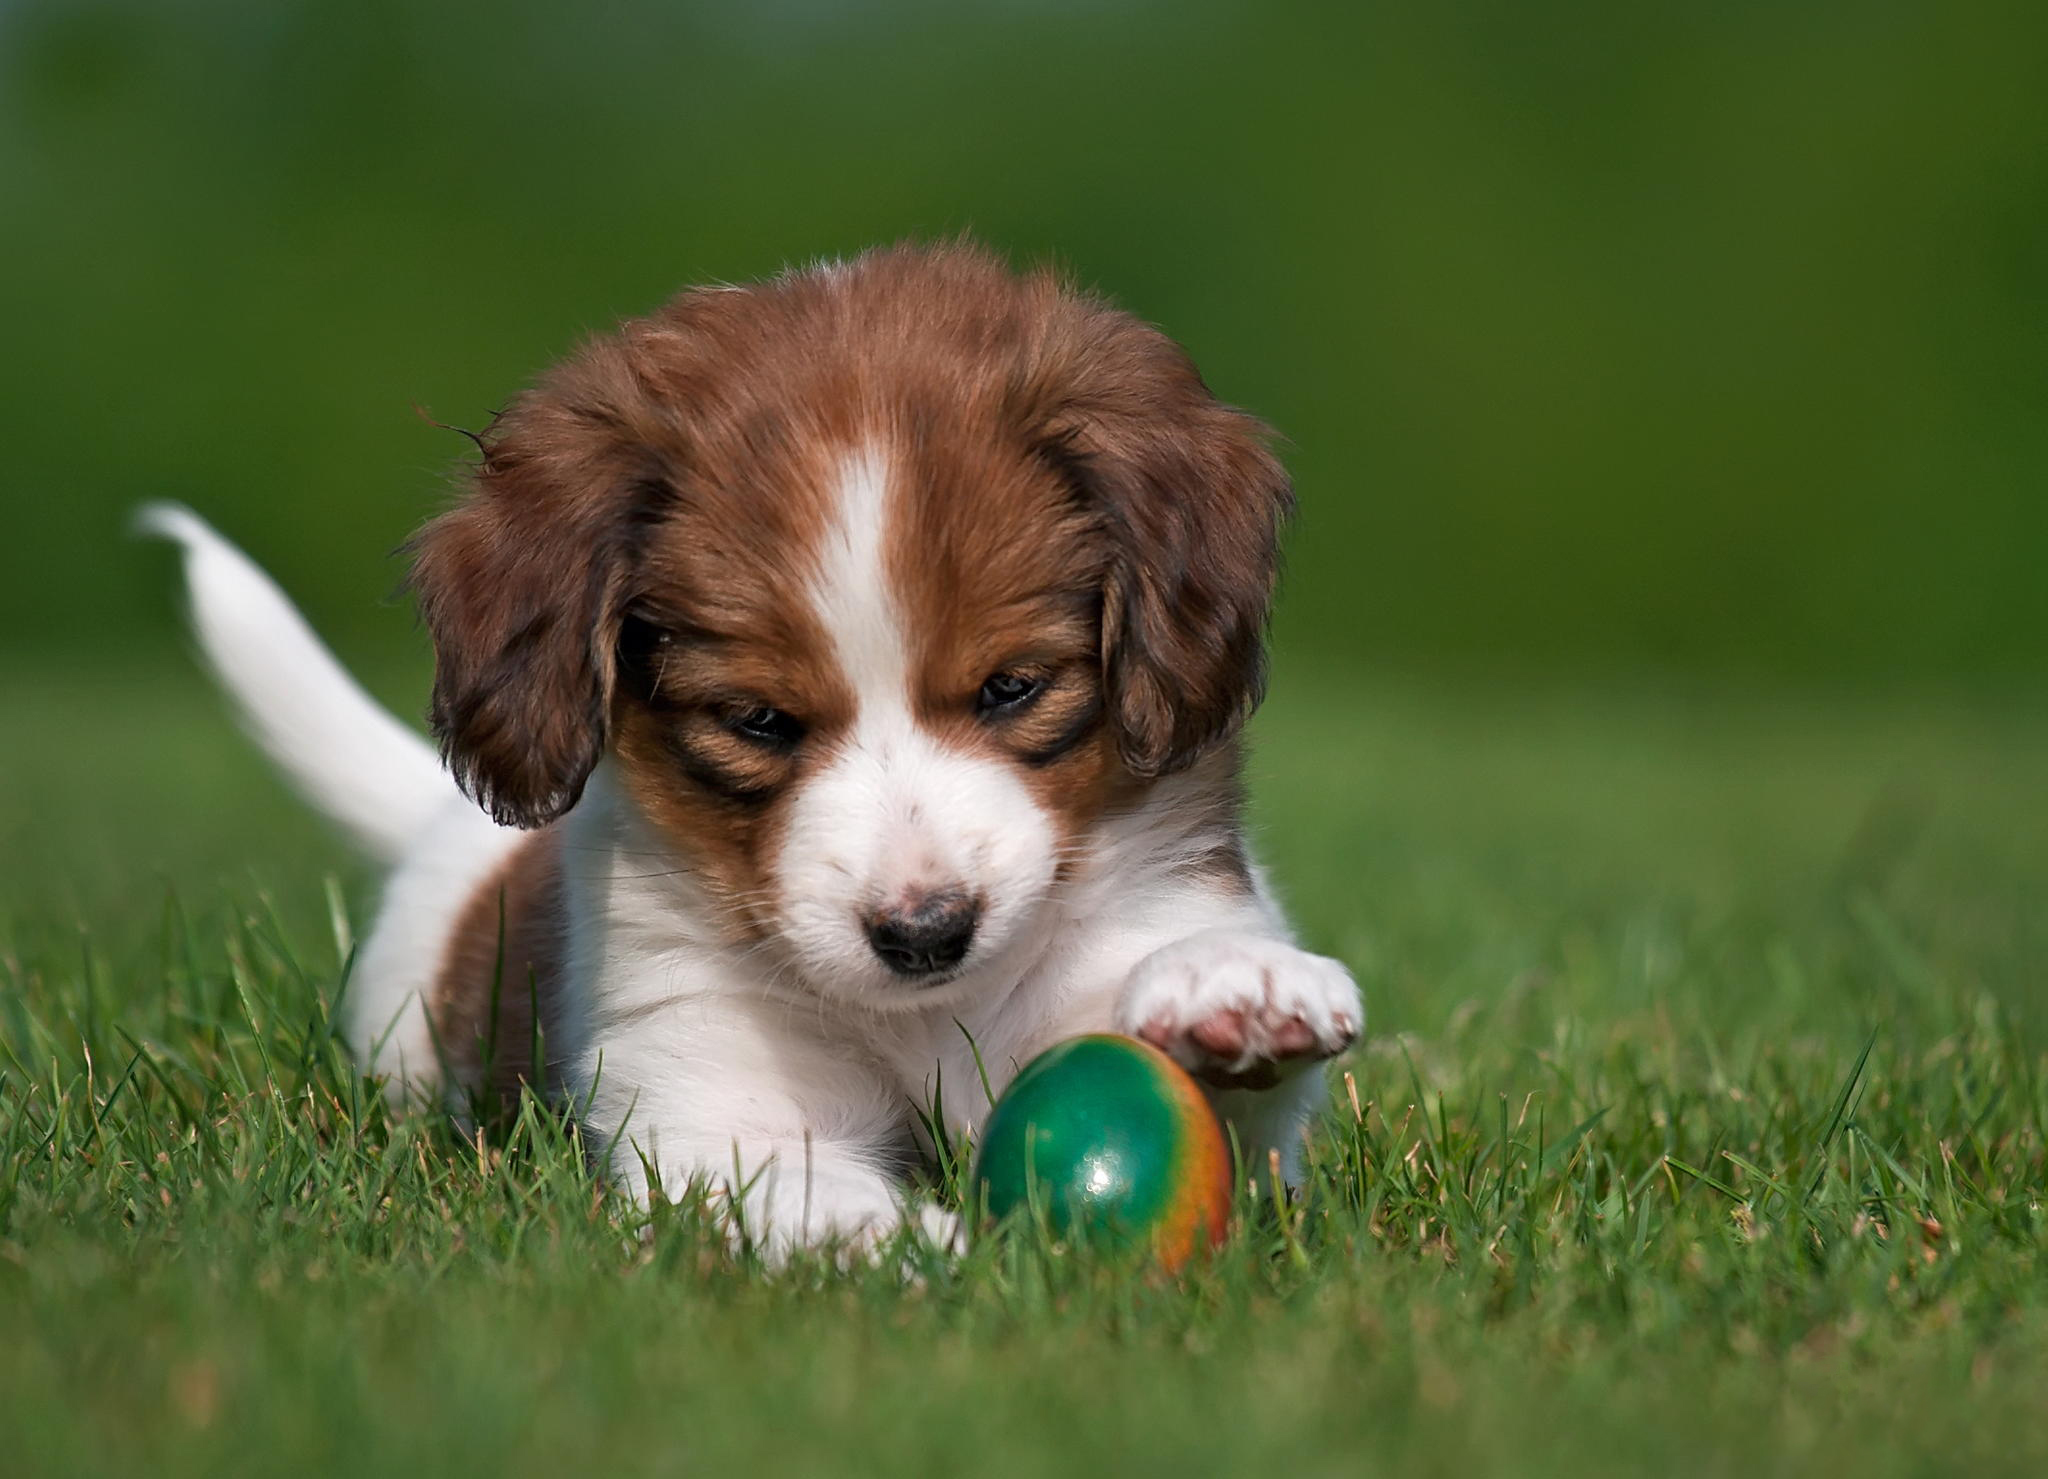 91396 download wallpaper Animals, Koikerhondje, Coykerhondie, Dog, Puppy, Ball, Playful screensavers and pictures for free